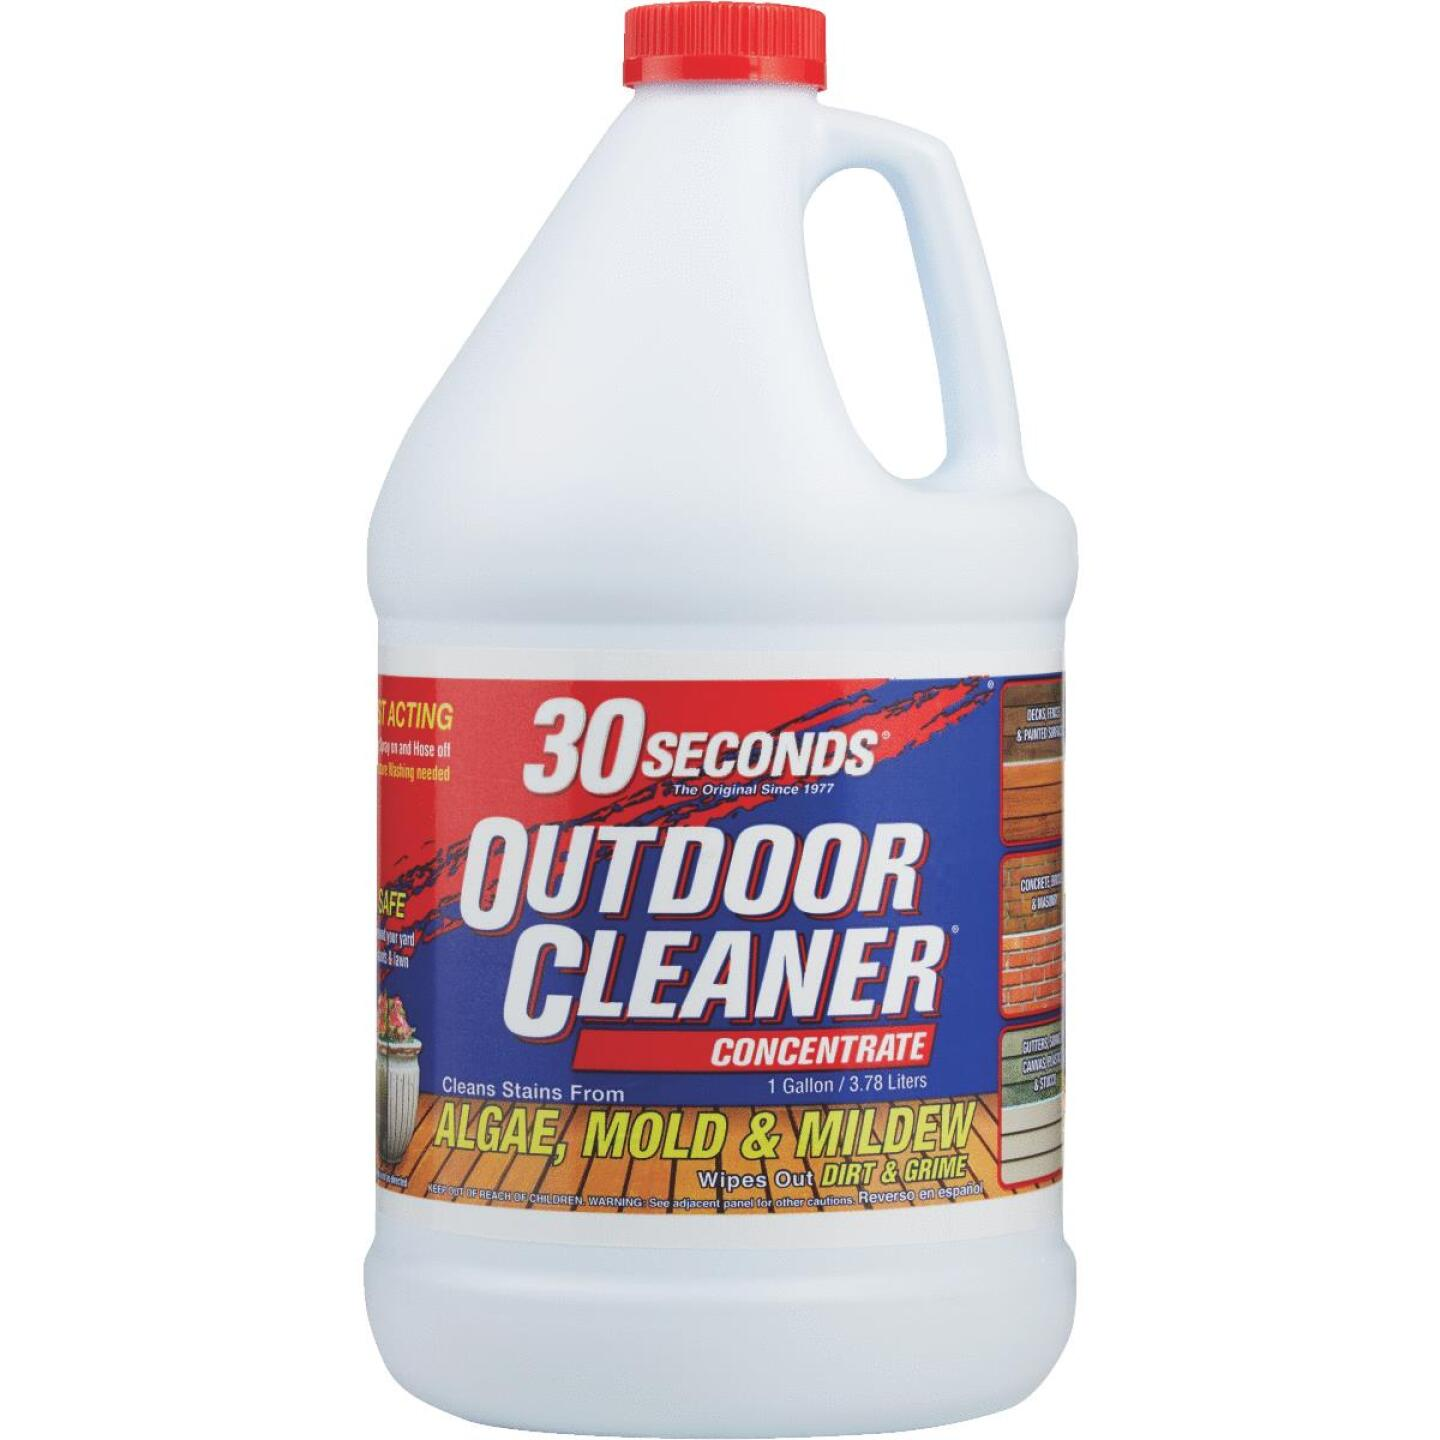 30 seconds Outdoor Cleaner 1 Gal. Concentrate Algae, Mold & Mildew Stain Remover Image 2